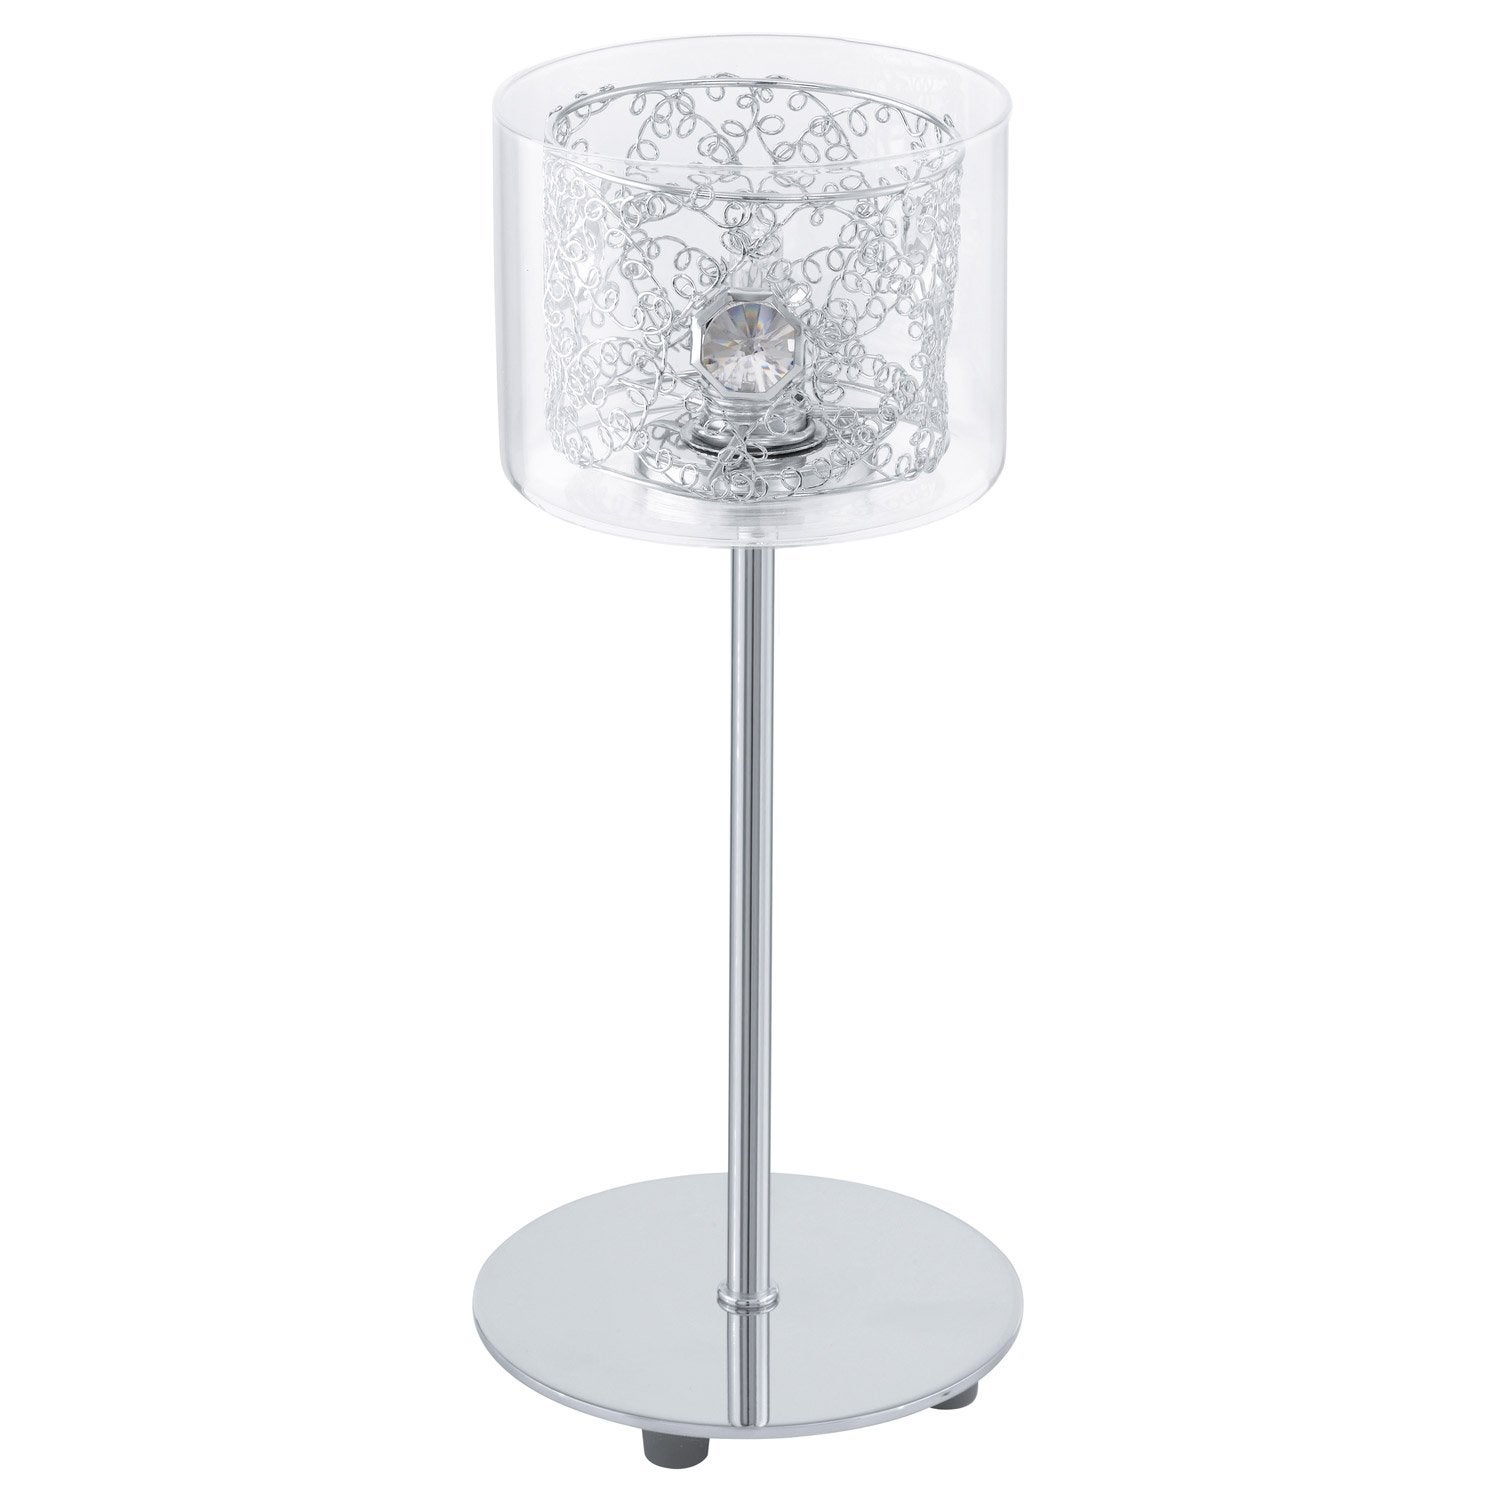 Lampe poser pianella eglo verre transparent 40 watts leroy merlin - Lampe anti moustique leroy merlin ...